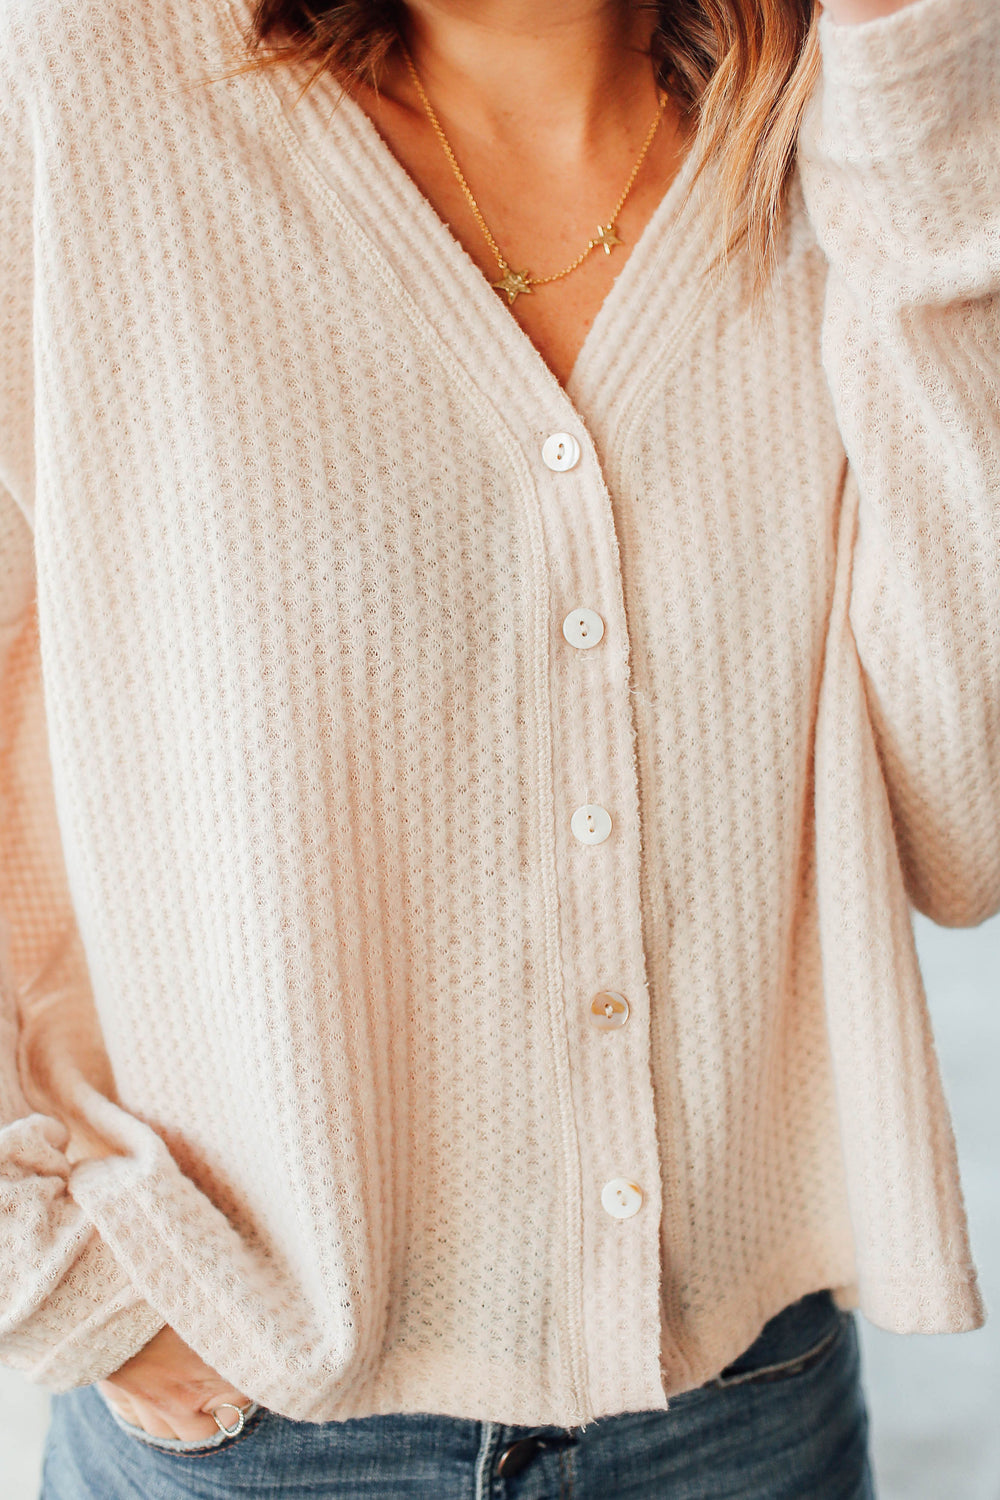 Ivory Long Sleeve Button Up Inspired By Ashley from Twenties Girl Style